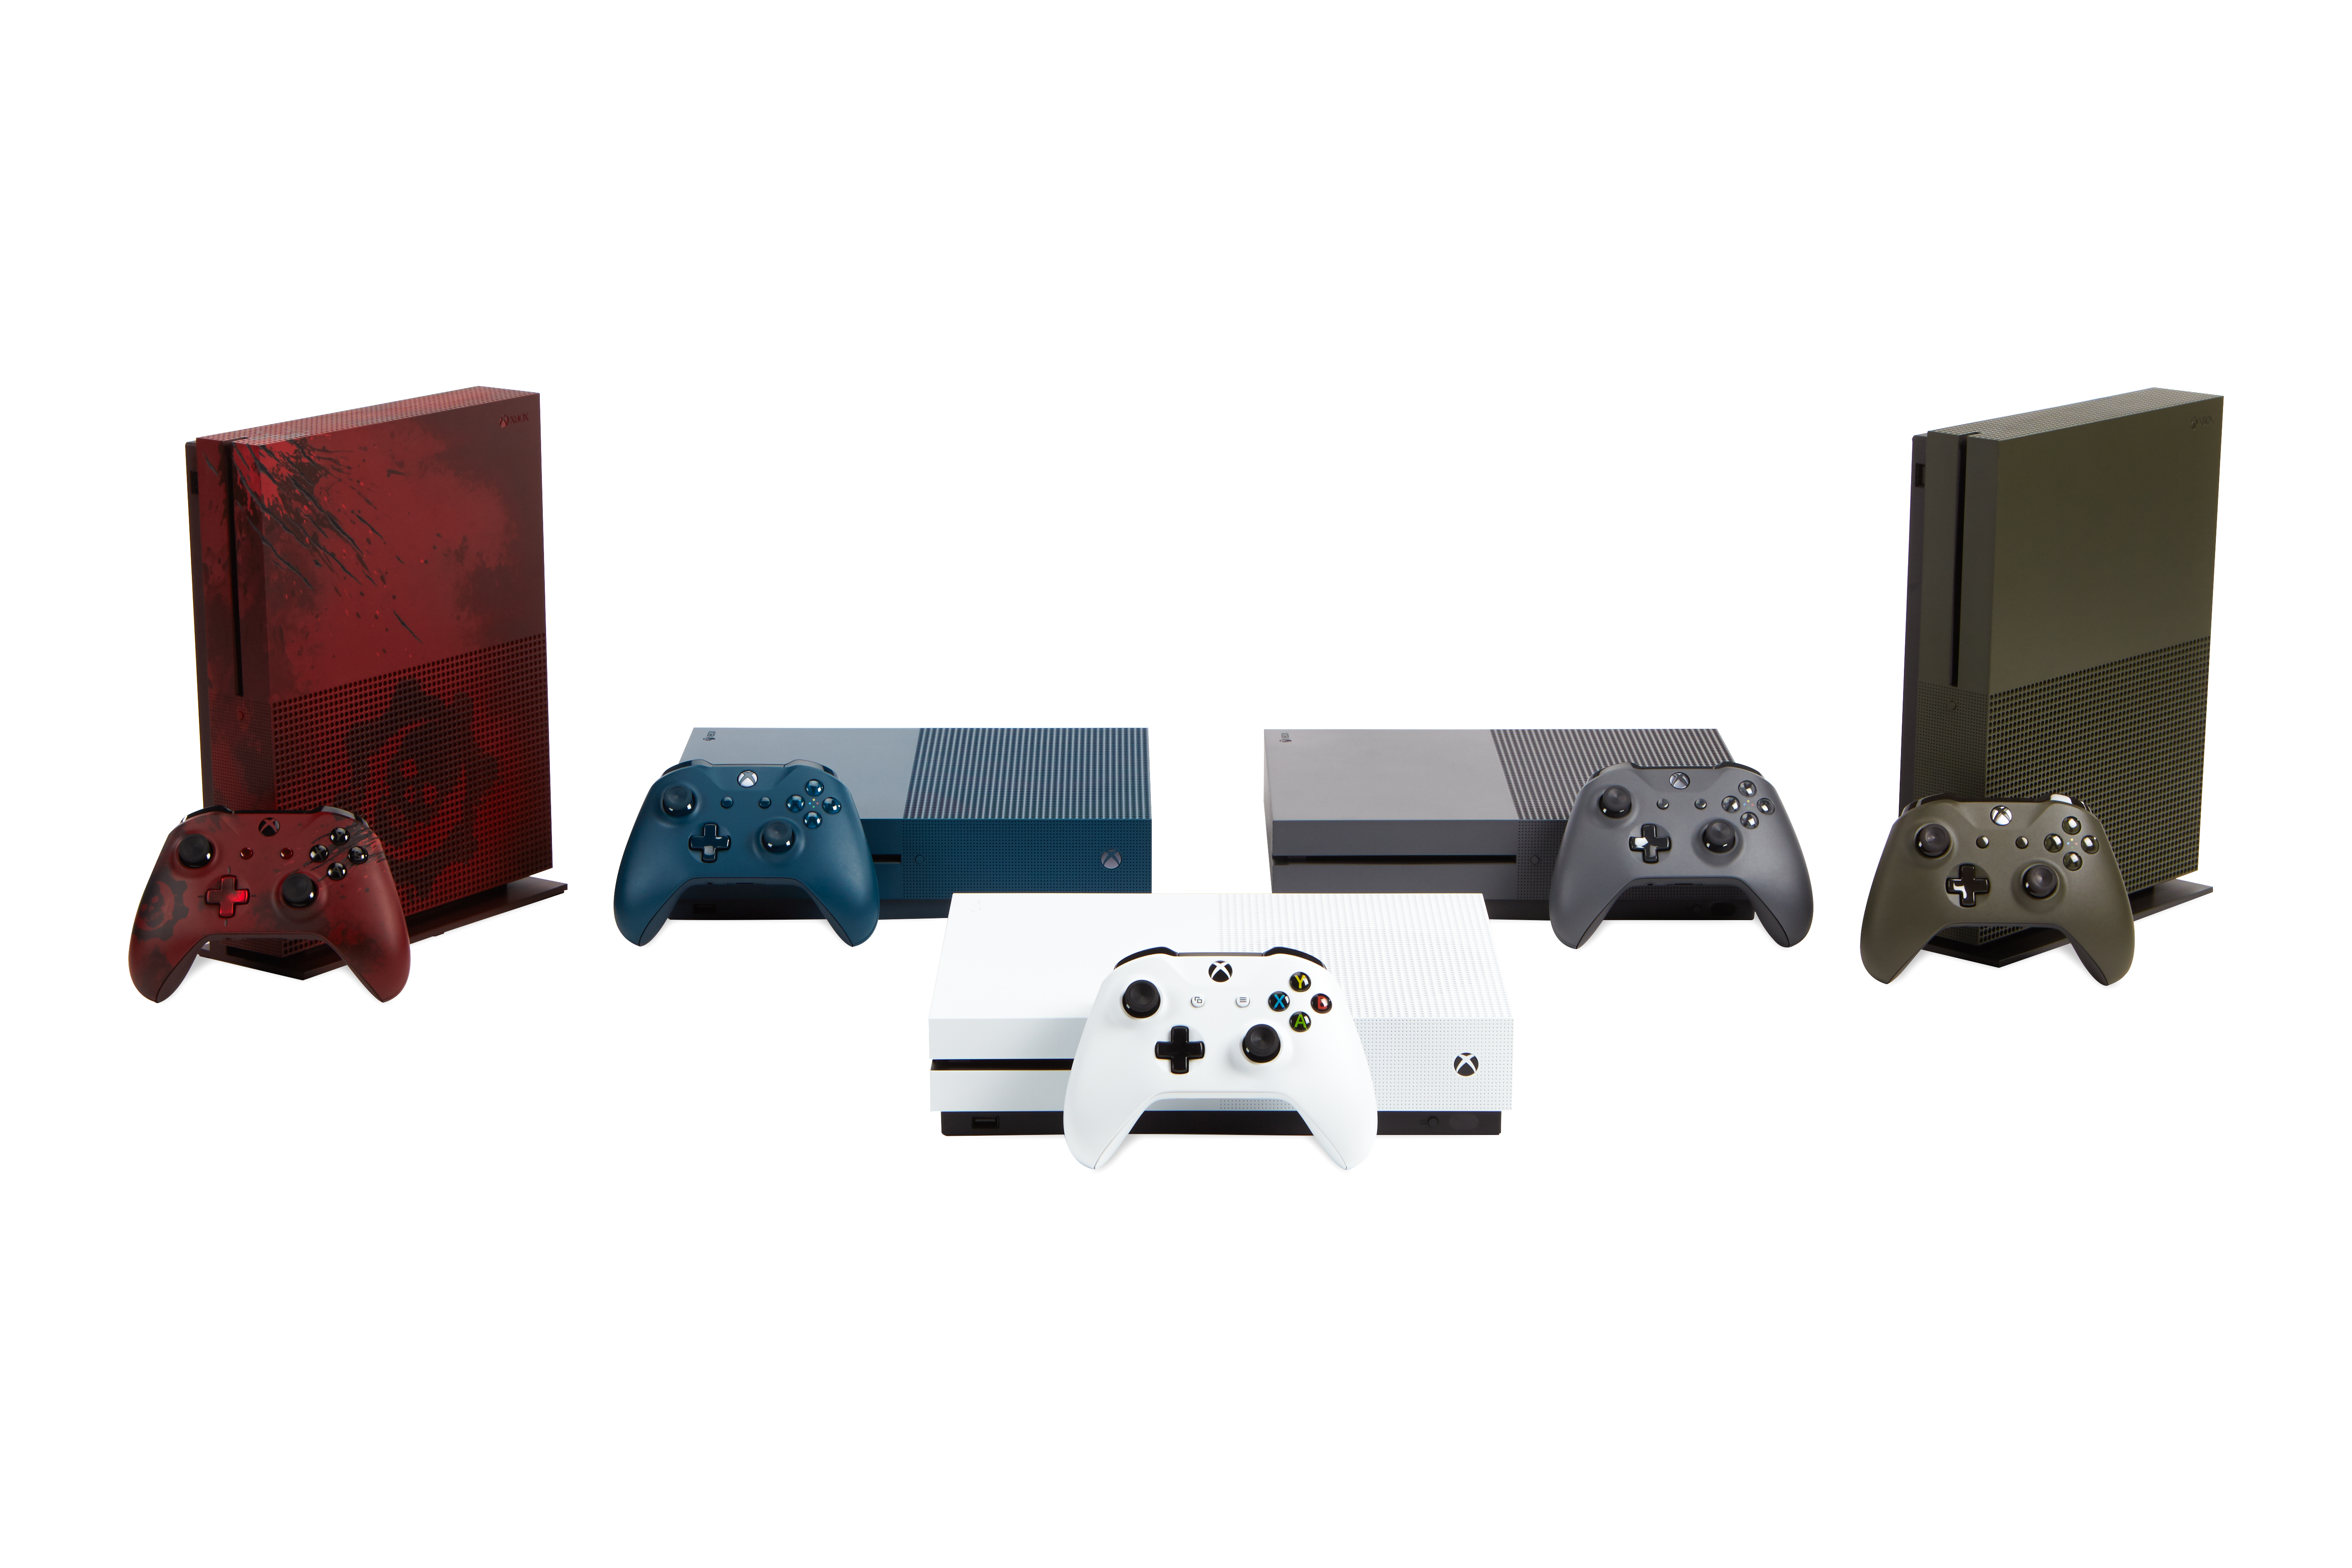 Picture of various Xbox One S consoles available this holiday